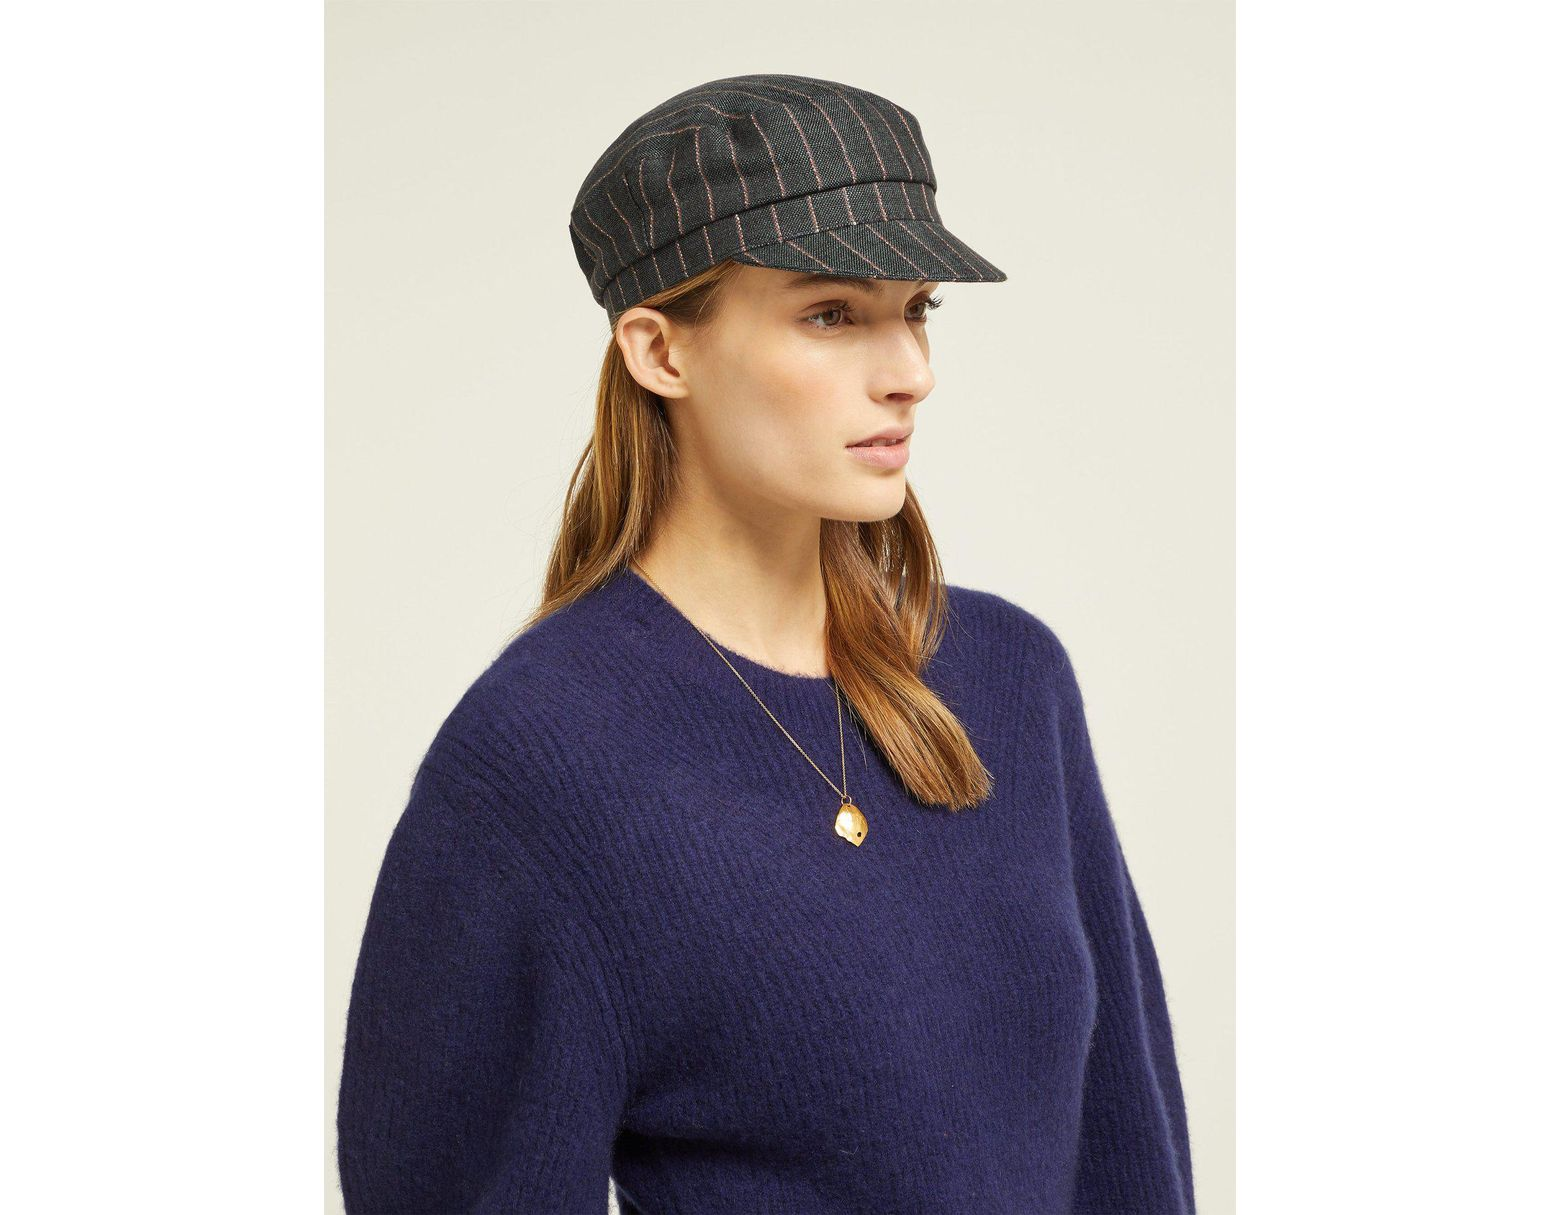 ae57e0dc Isabel Marant Evie Striped Linen Cap in Black - Save 17% - Lyst